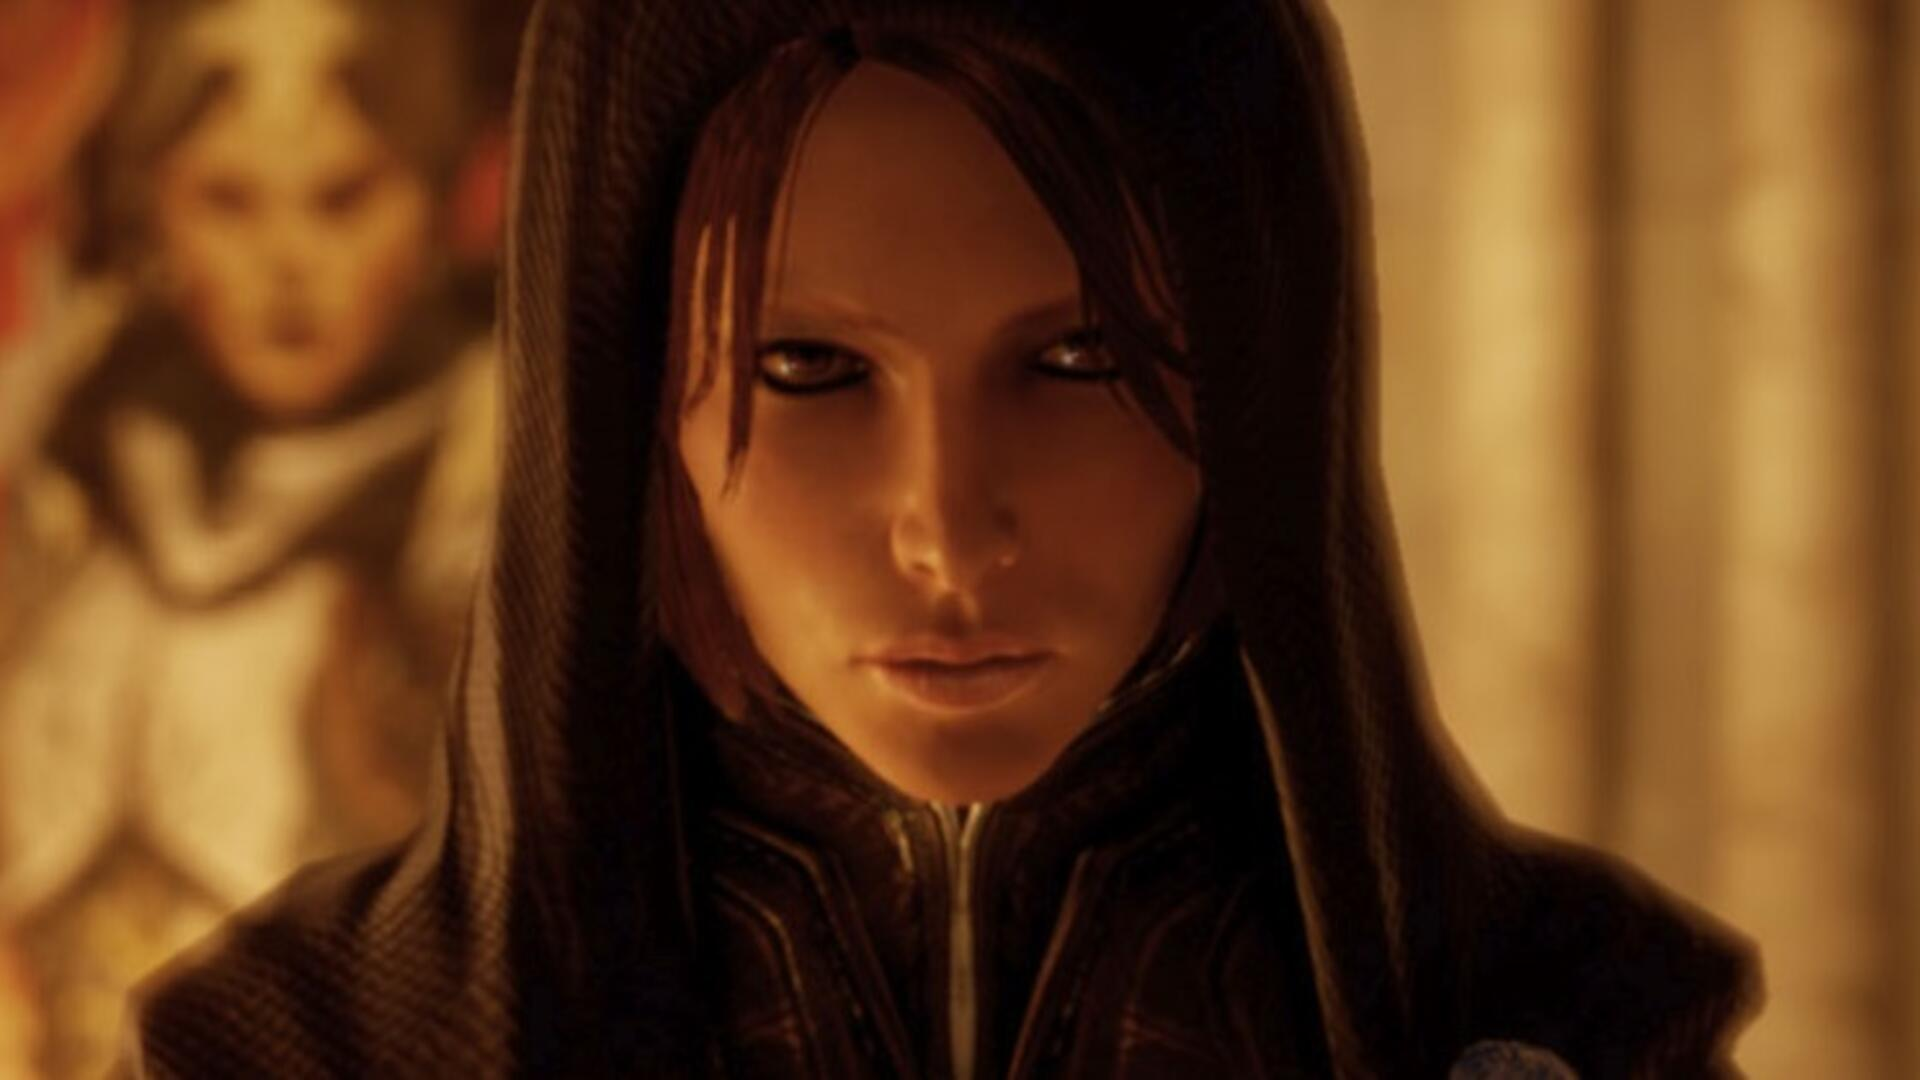 Dragon Age: Inquisition and the Mysteries of Faith